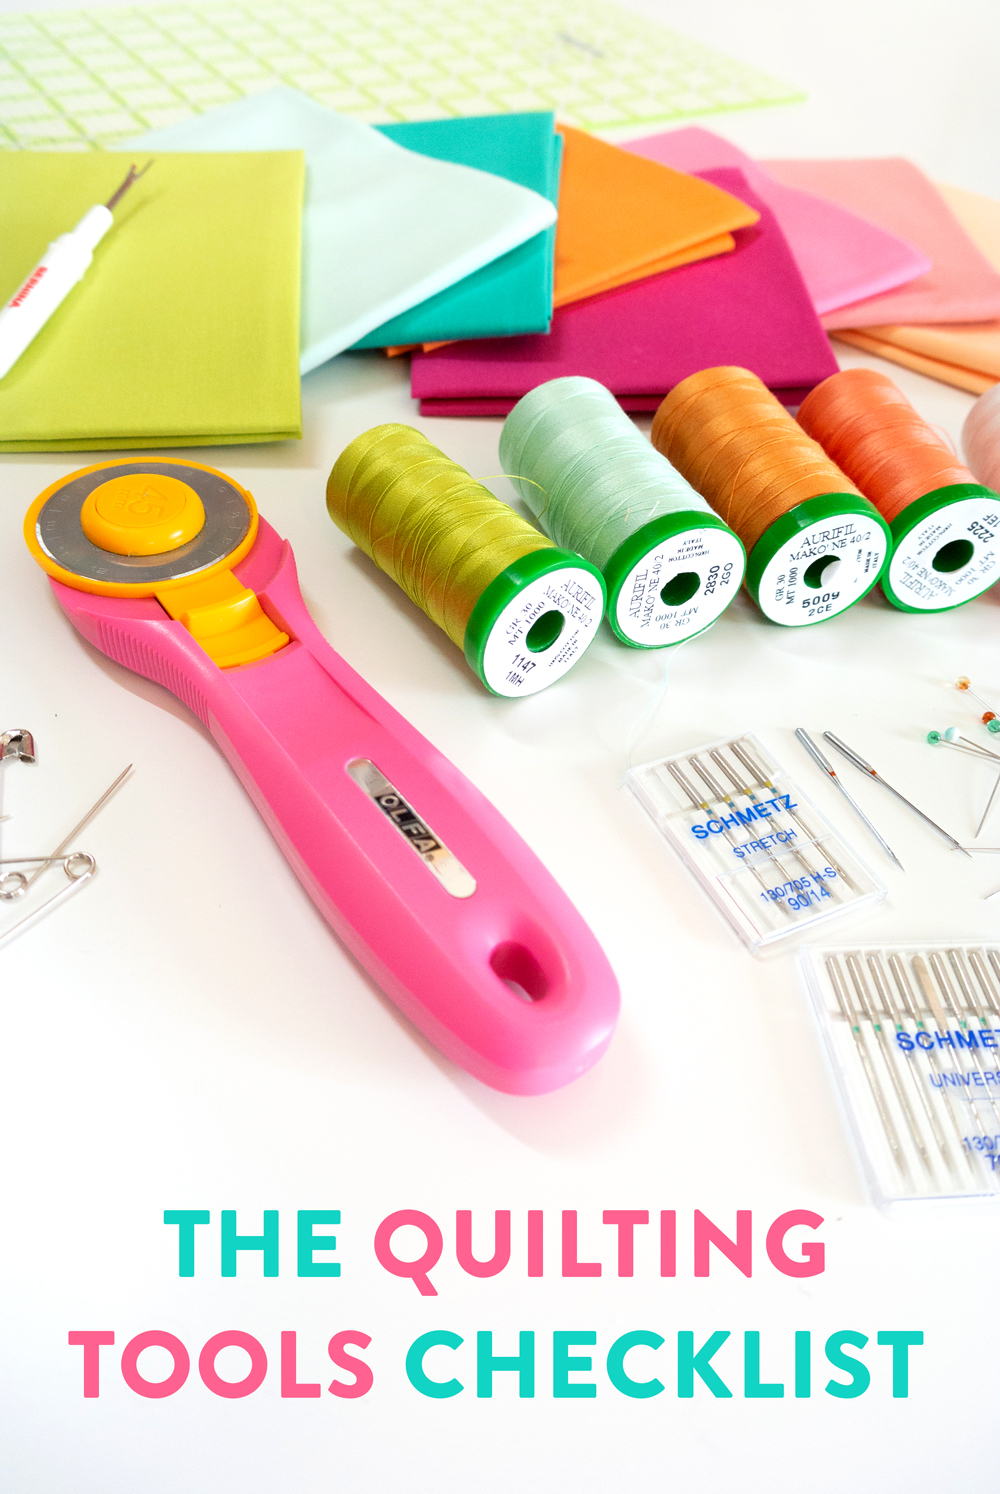 The best checklist for all of your sewing must-have tools